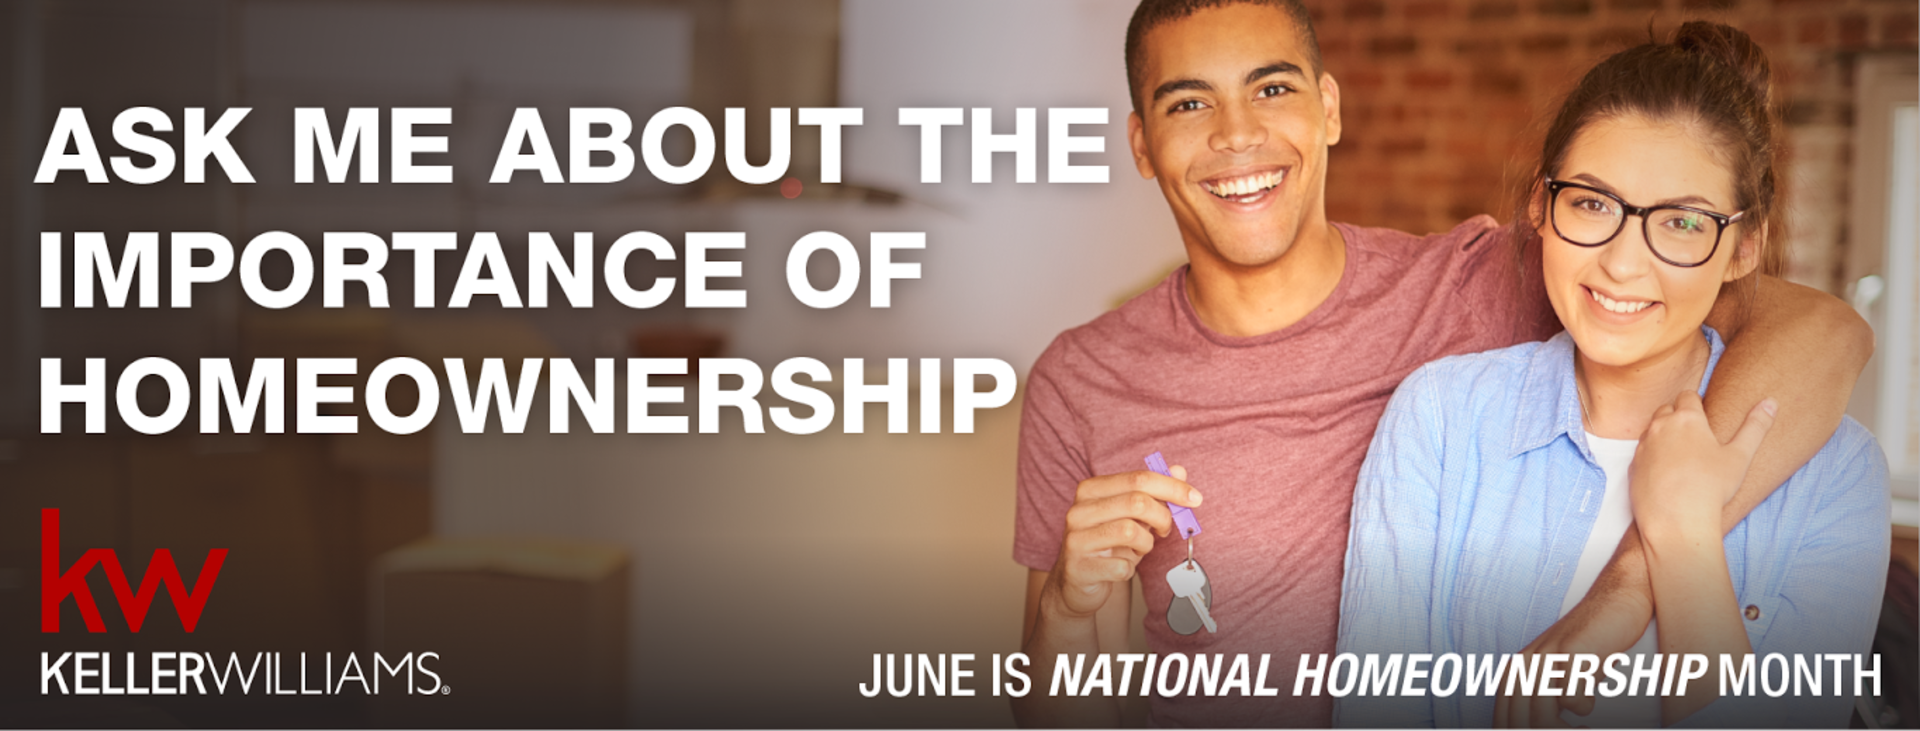 June is National Homeownership Month!